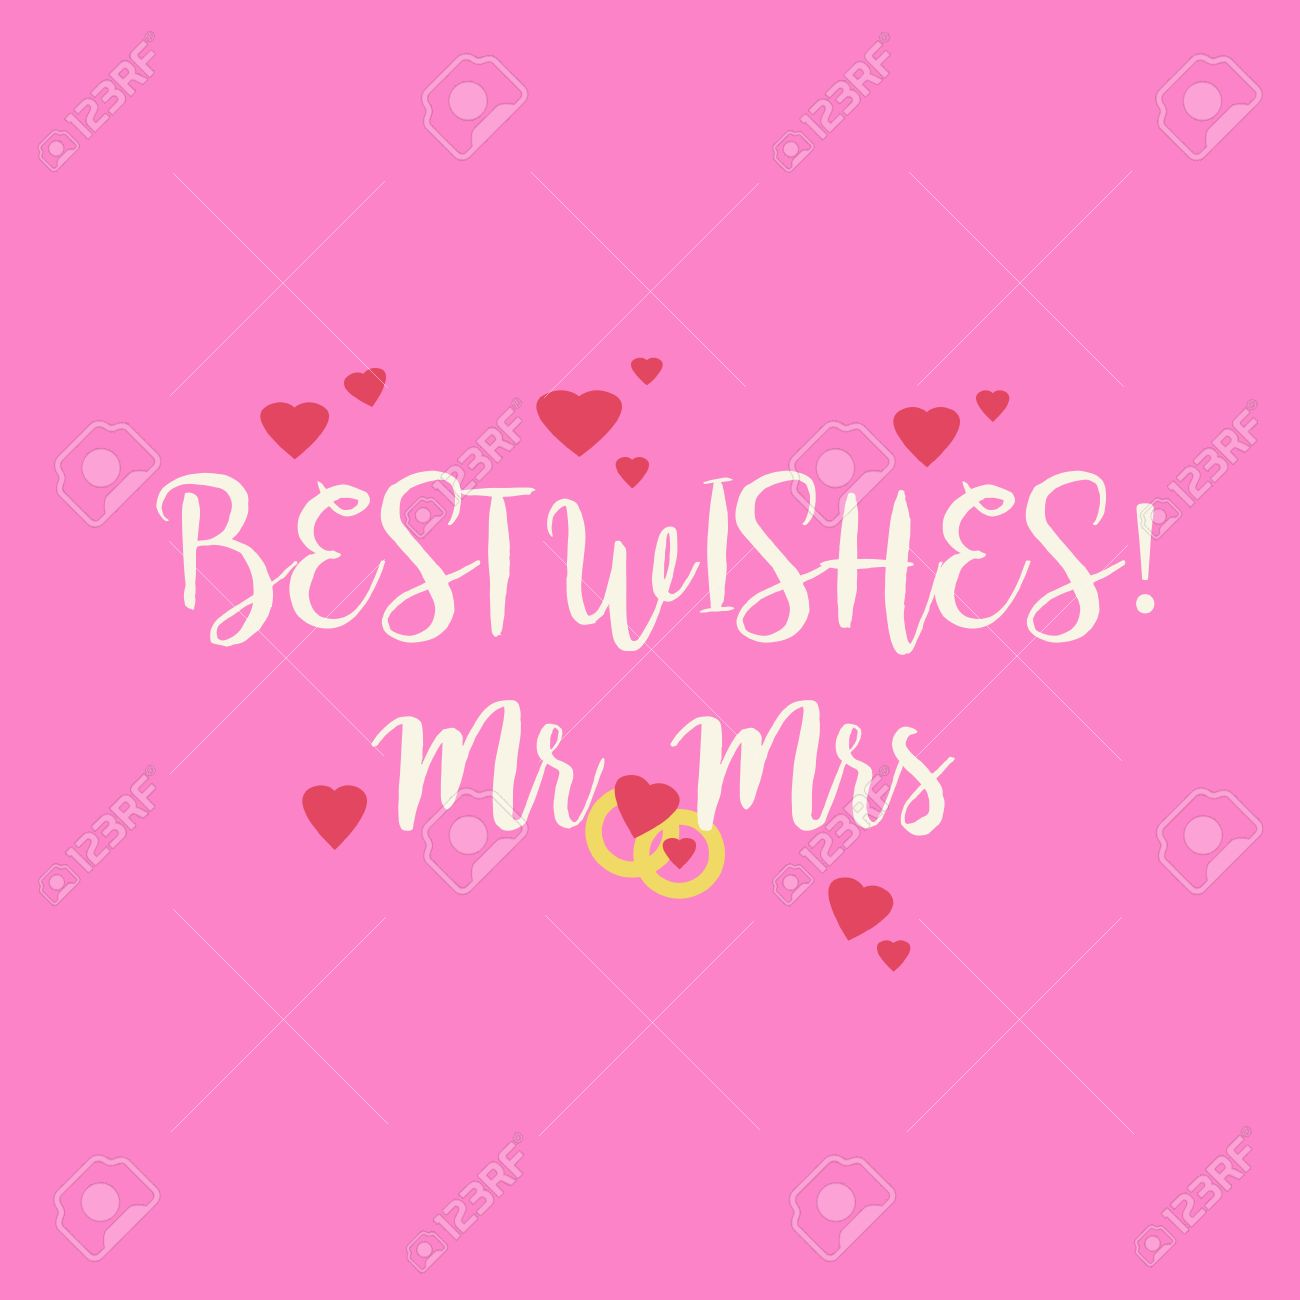 Cute Pink Wedding Best Wishes Mr Mrs Congratulations Greeting ...